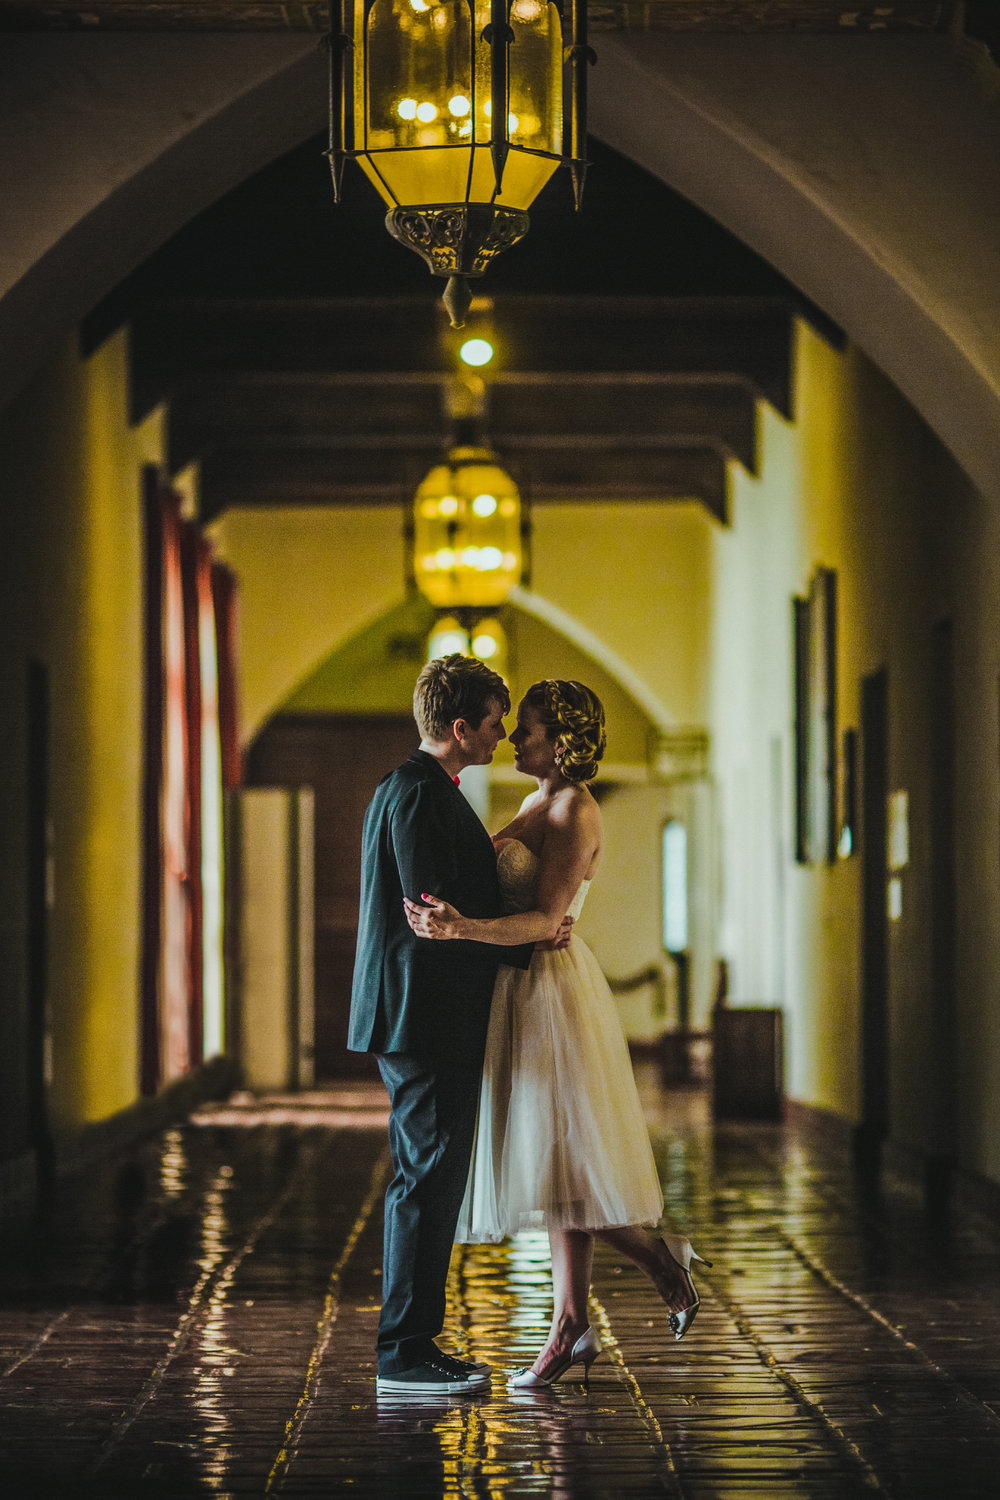 San_Diego_wedding_photographer_sweetpapermedia_Santa barbara courthouse elopement014.JPG